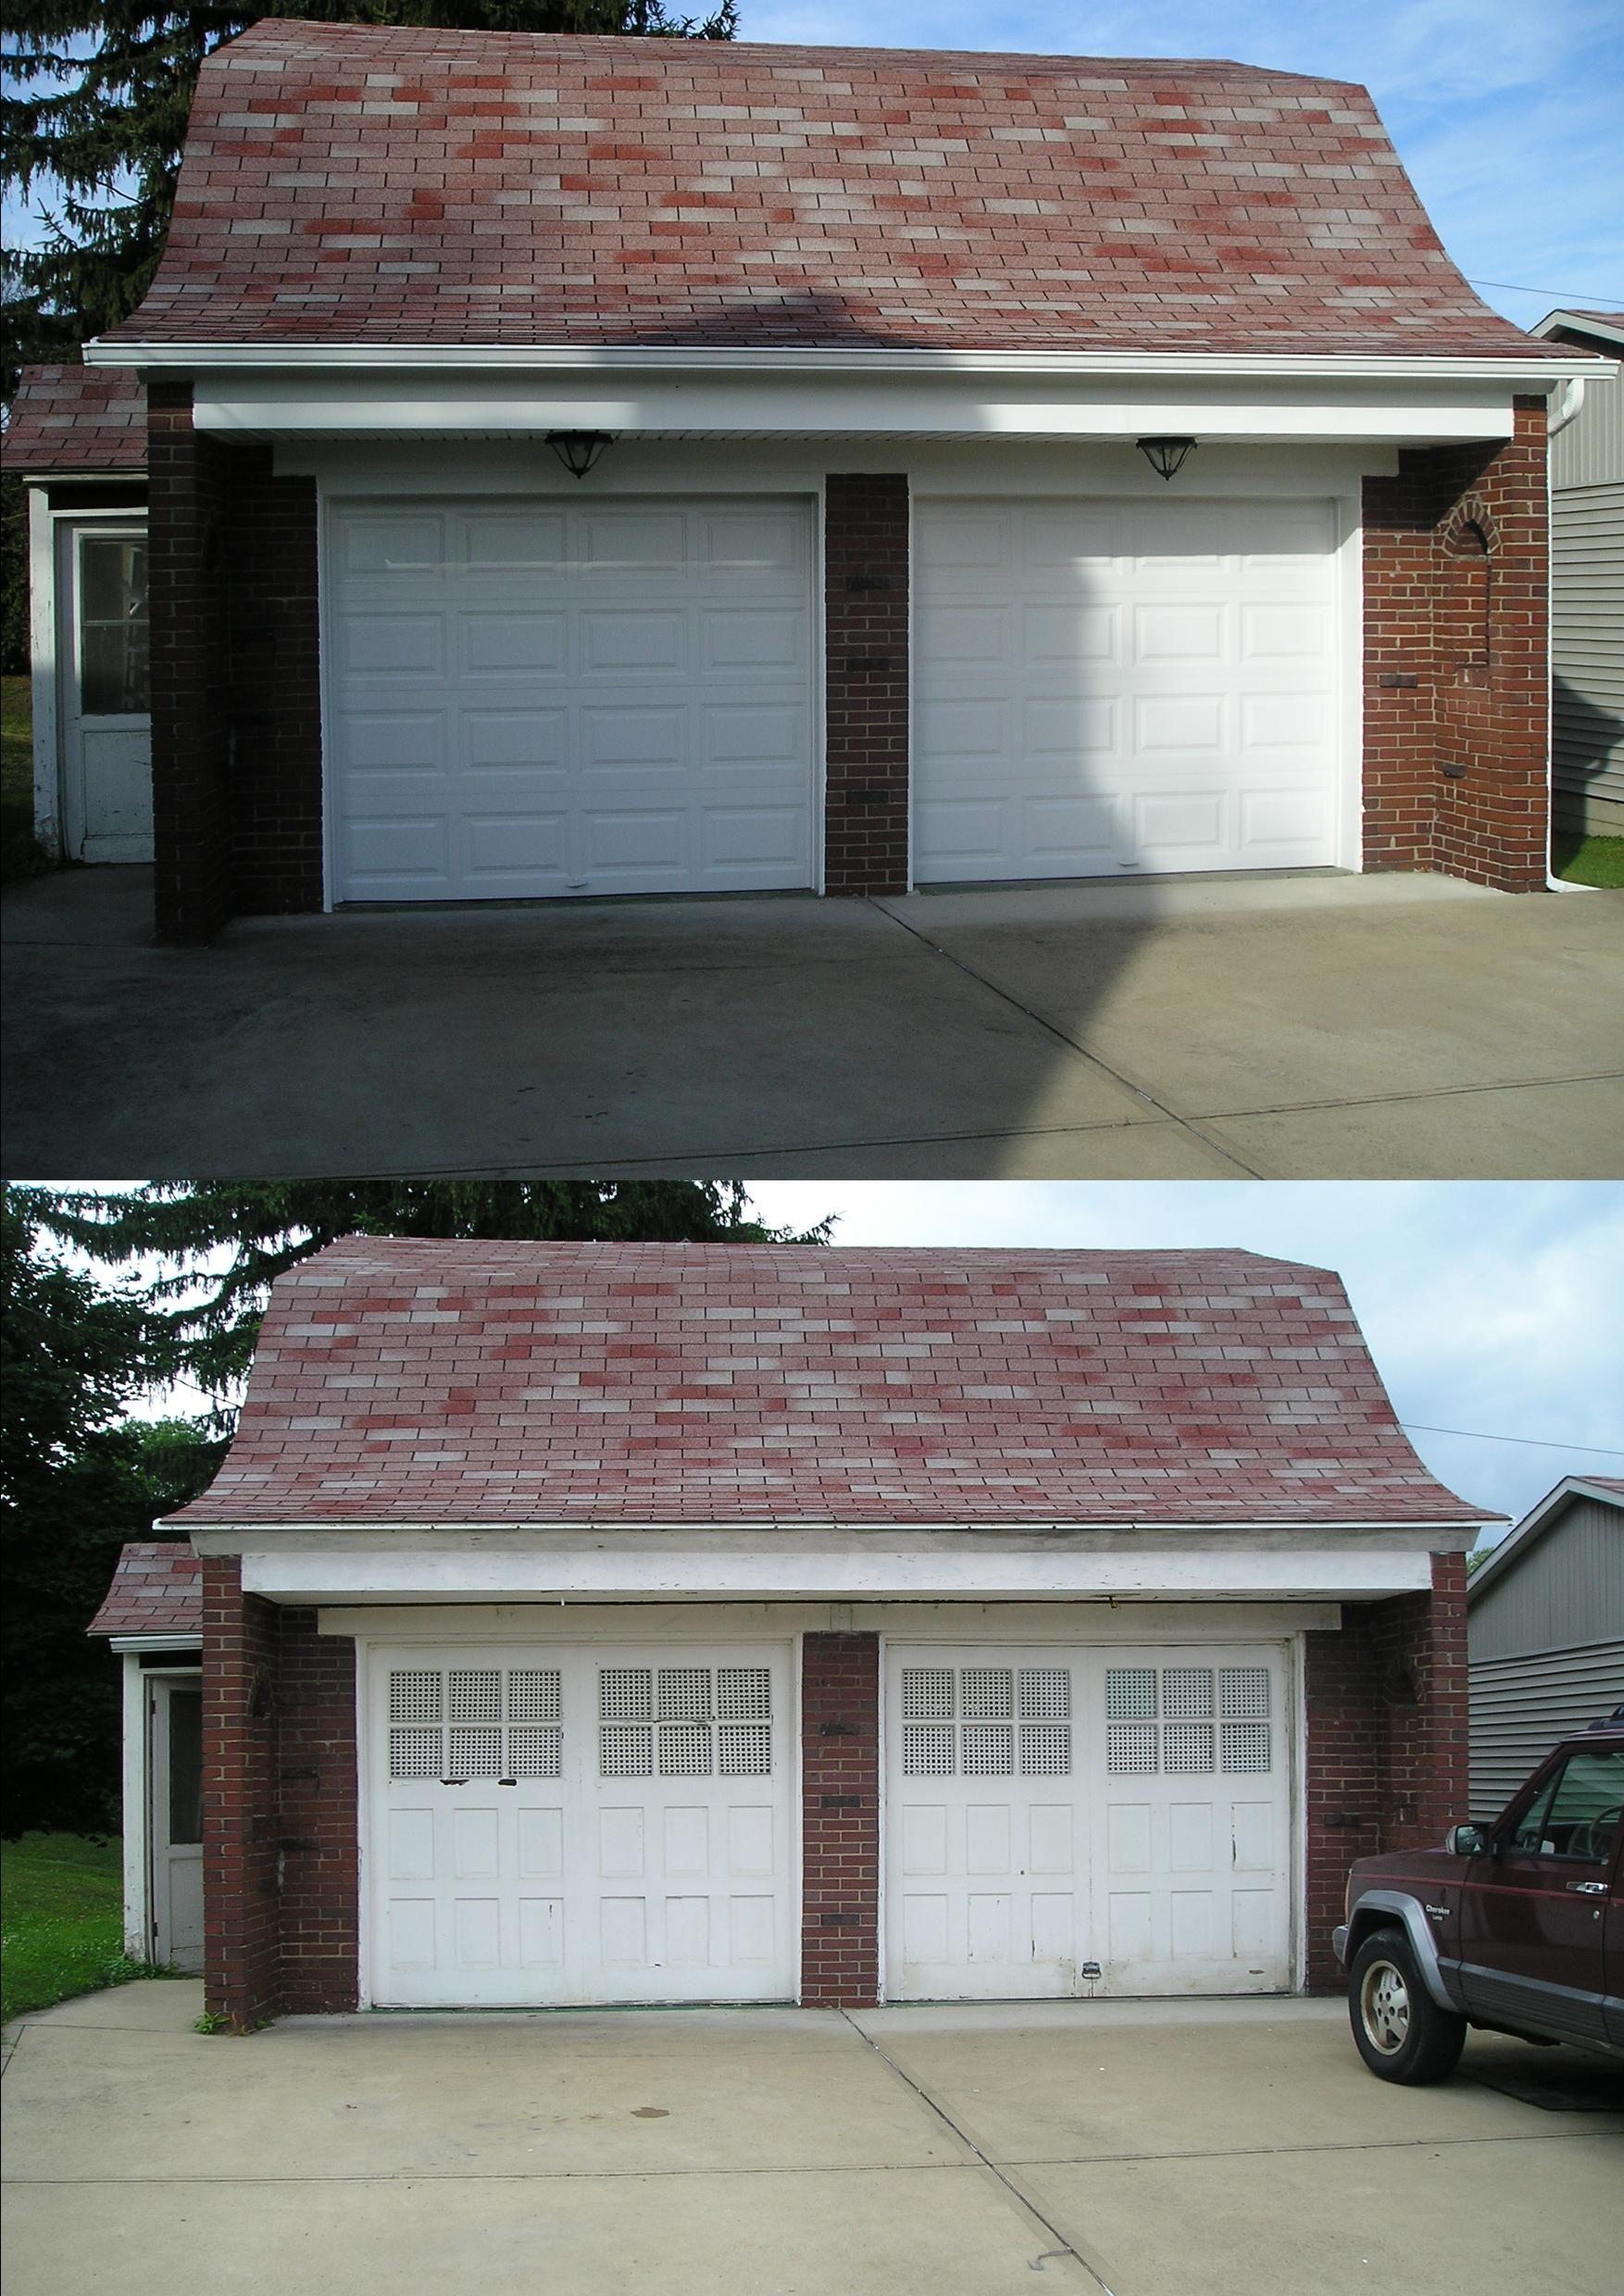 Clopay 4050 Garage Doors Installed By Thomas V Giel Garage Doors